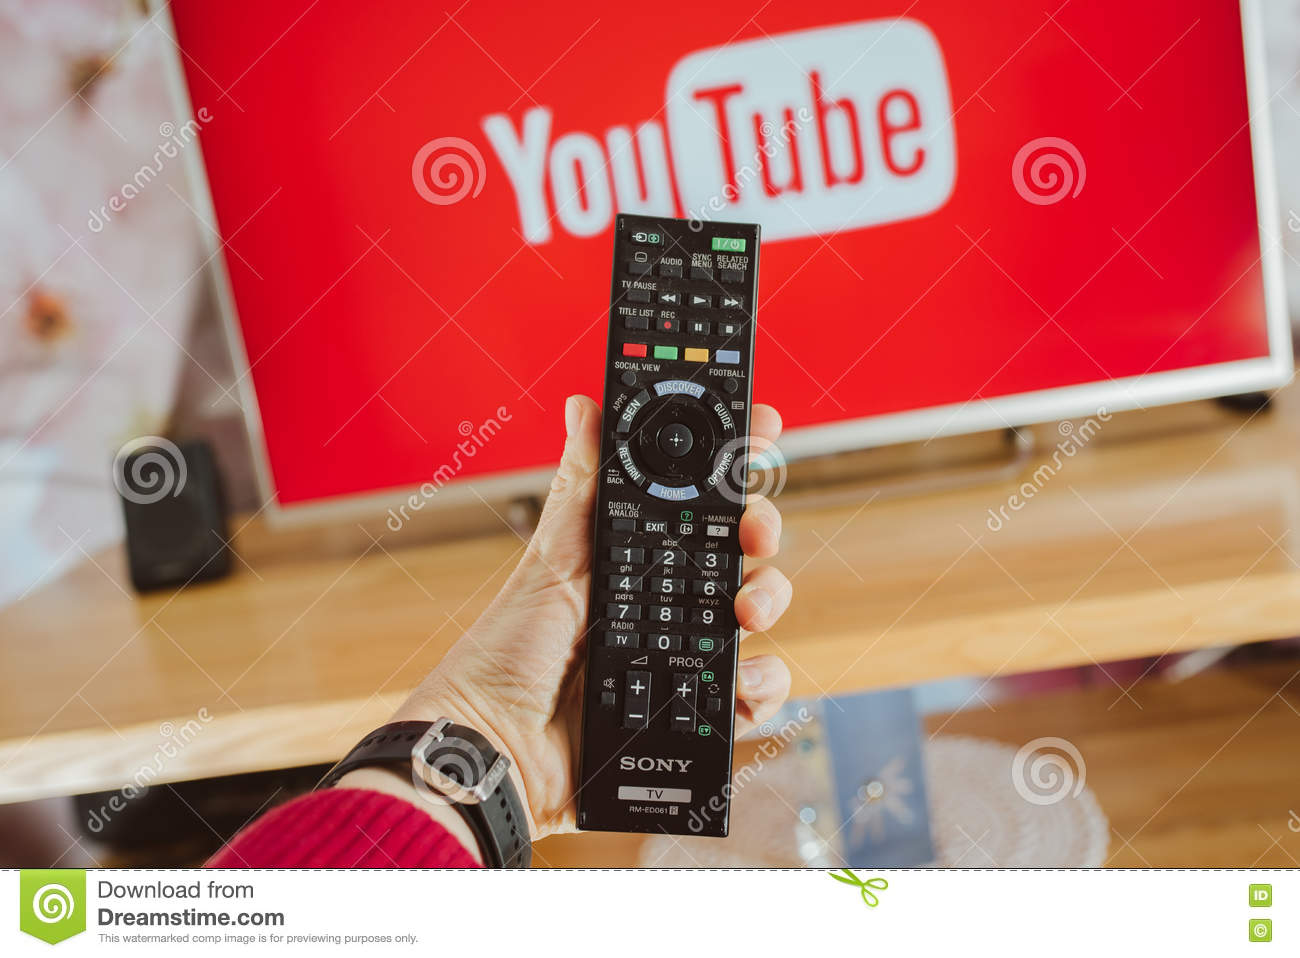 YouTube App On Sony Smart TV Editorial Stock Image - Image